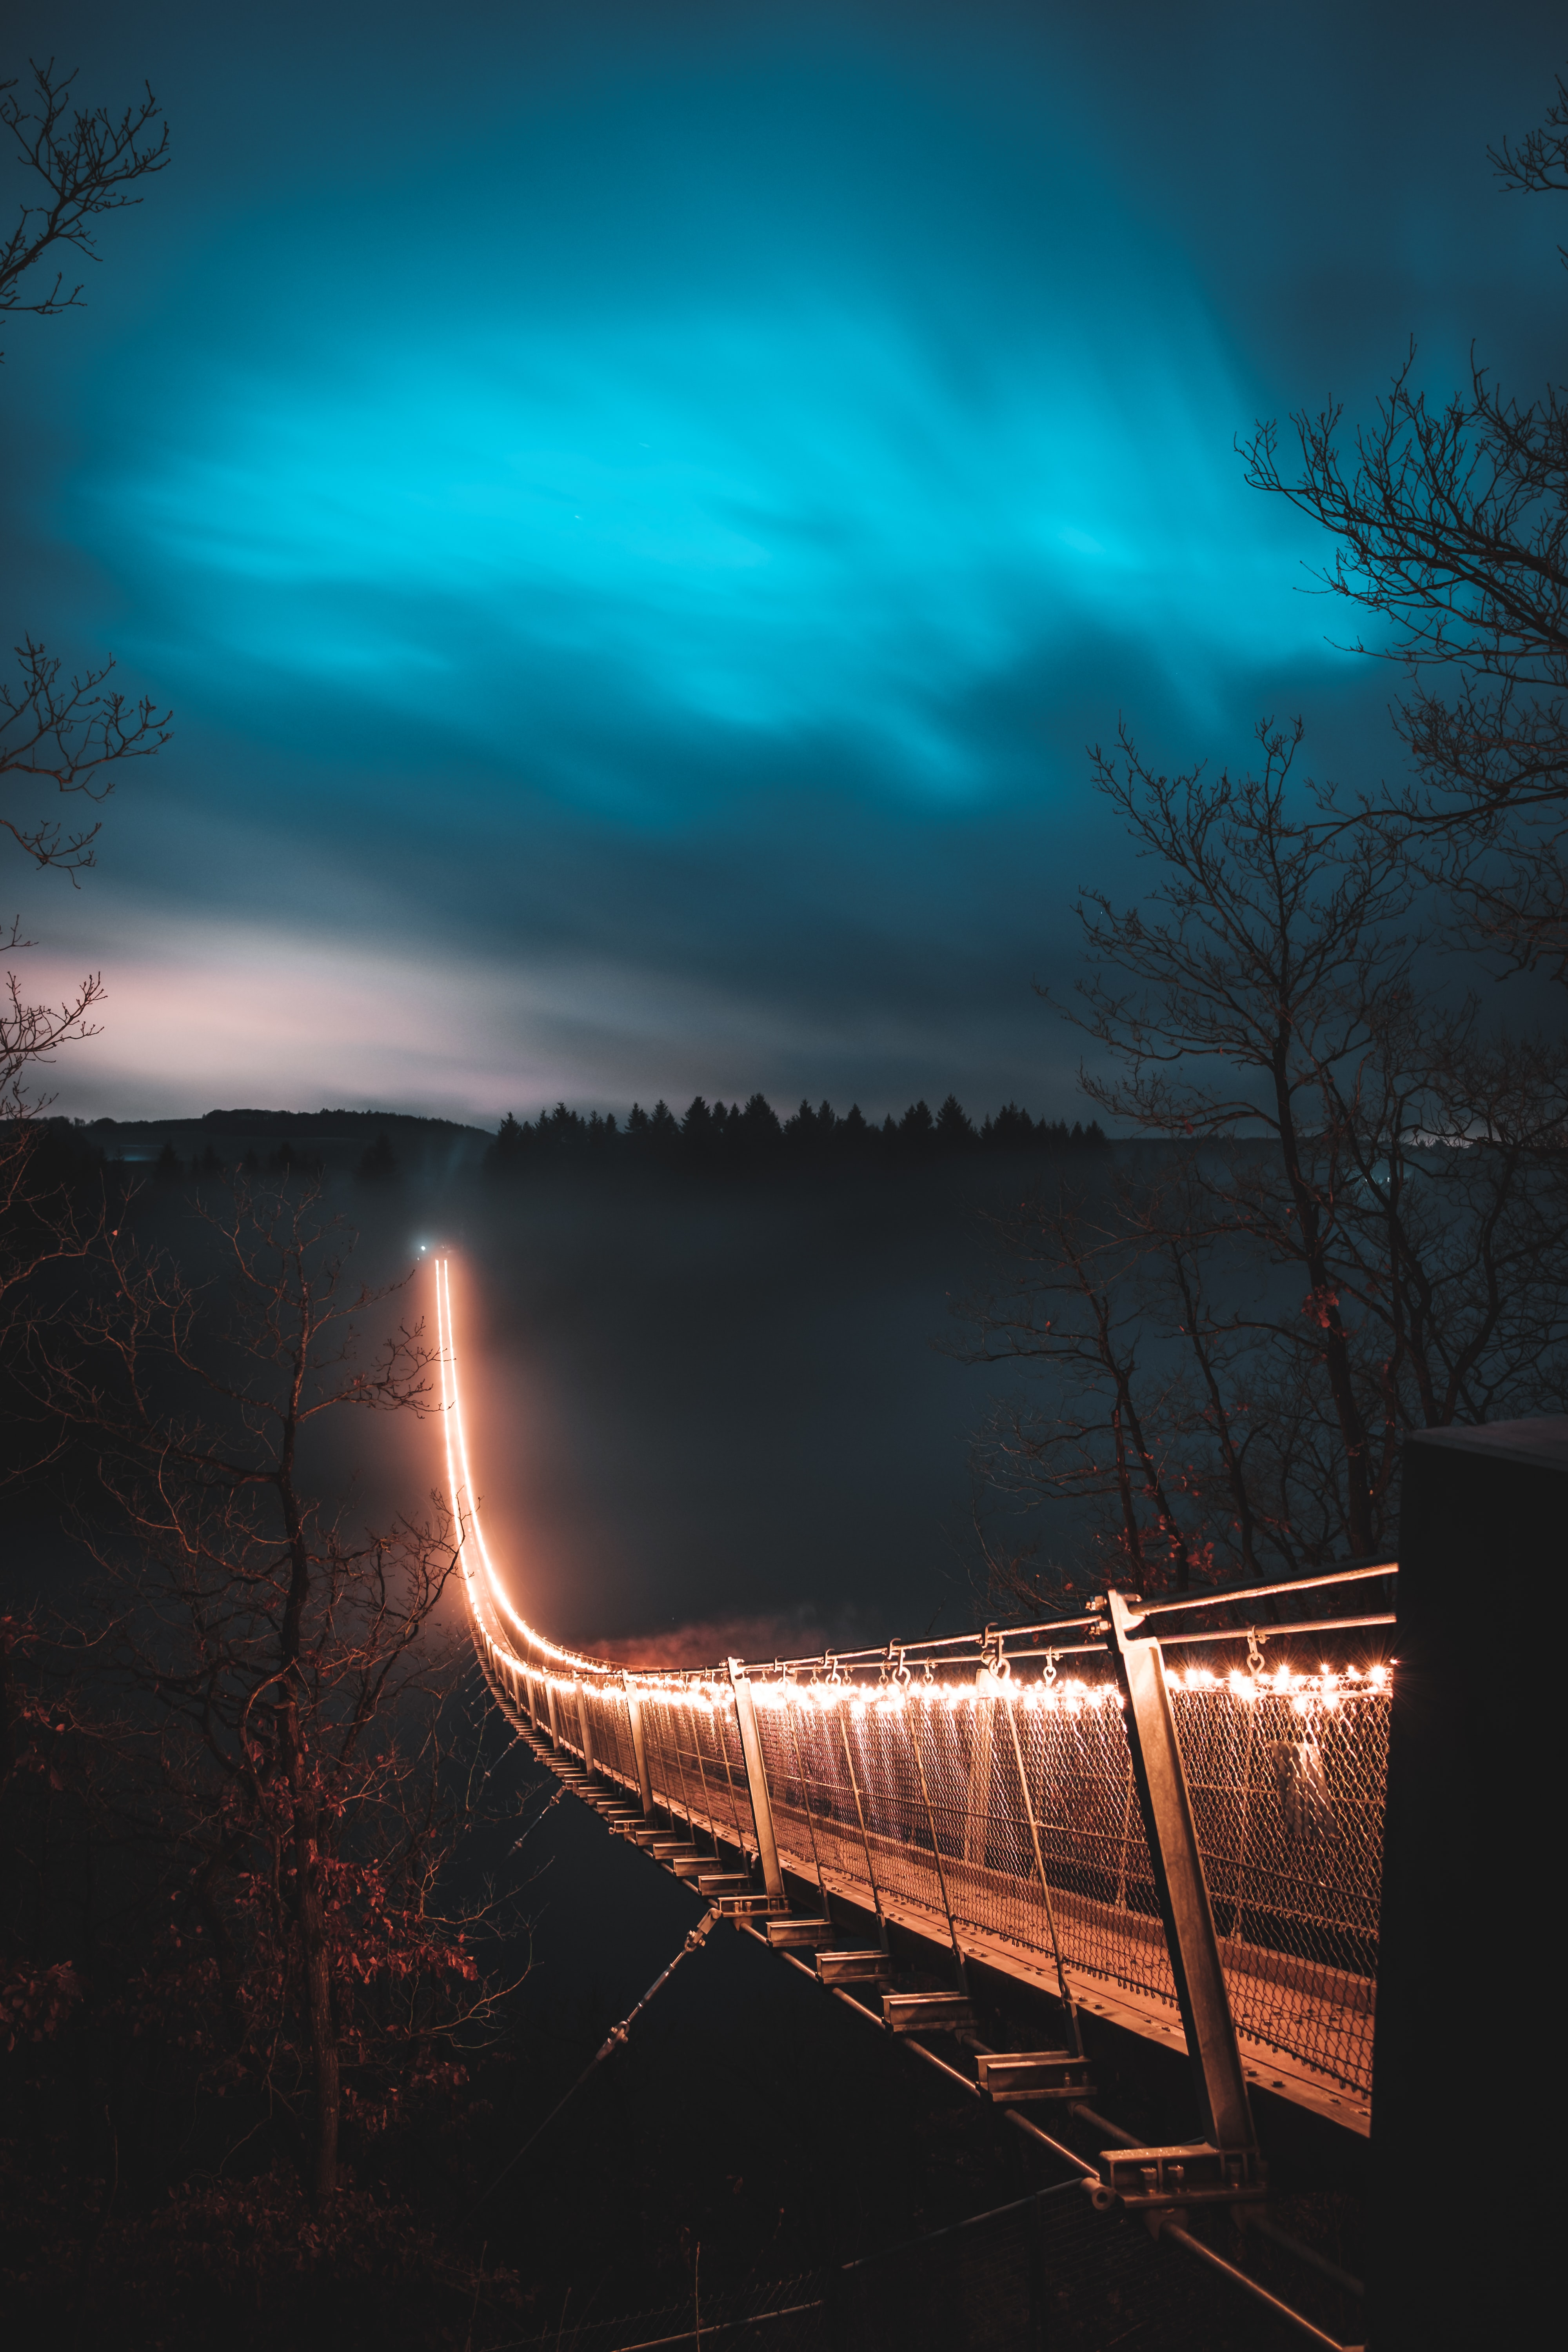 brown suspension bridge with light during nighttime